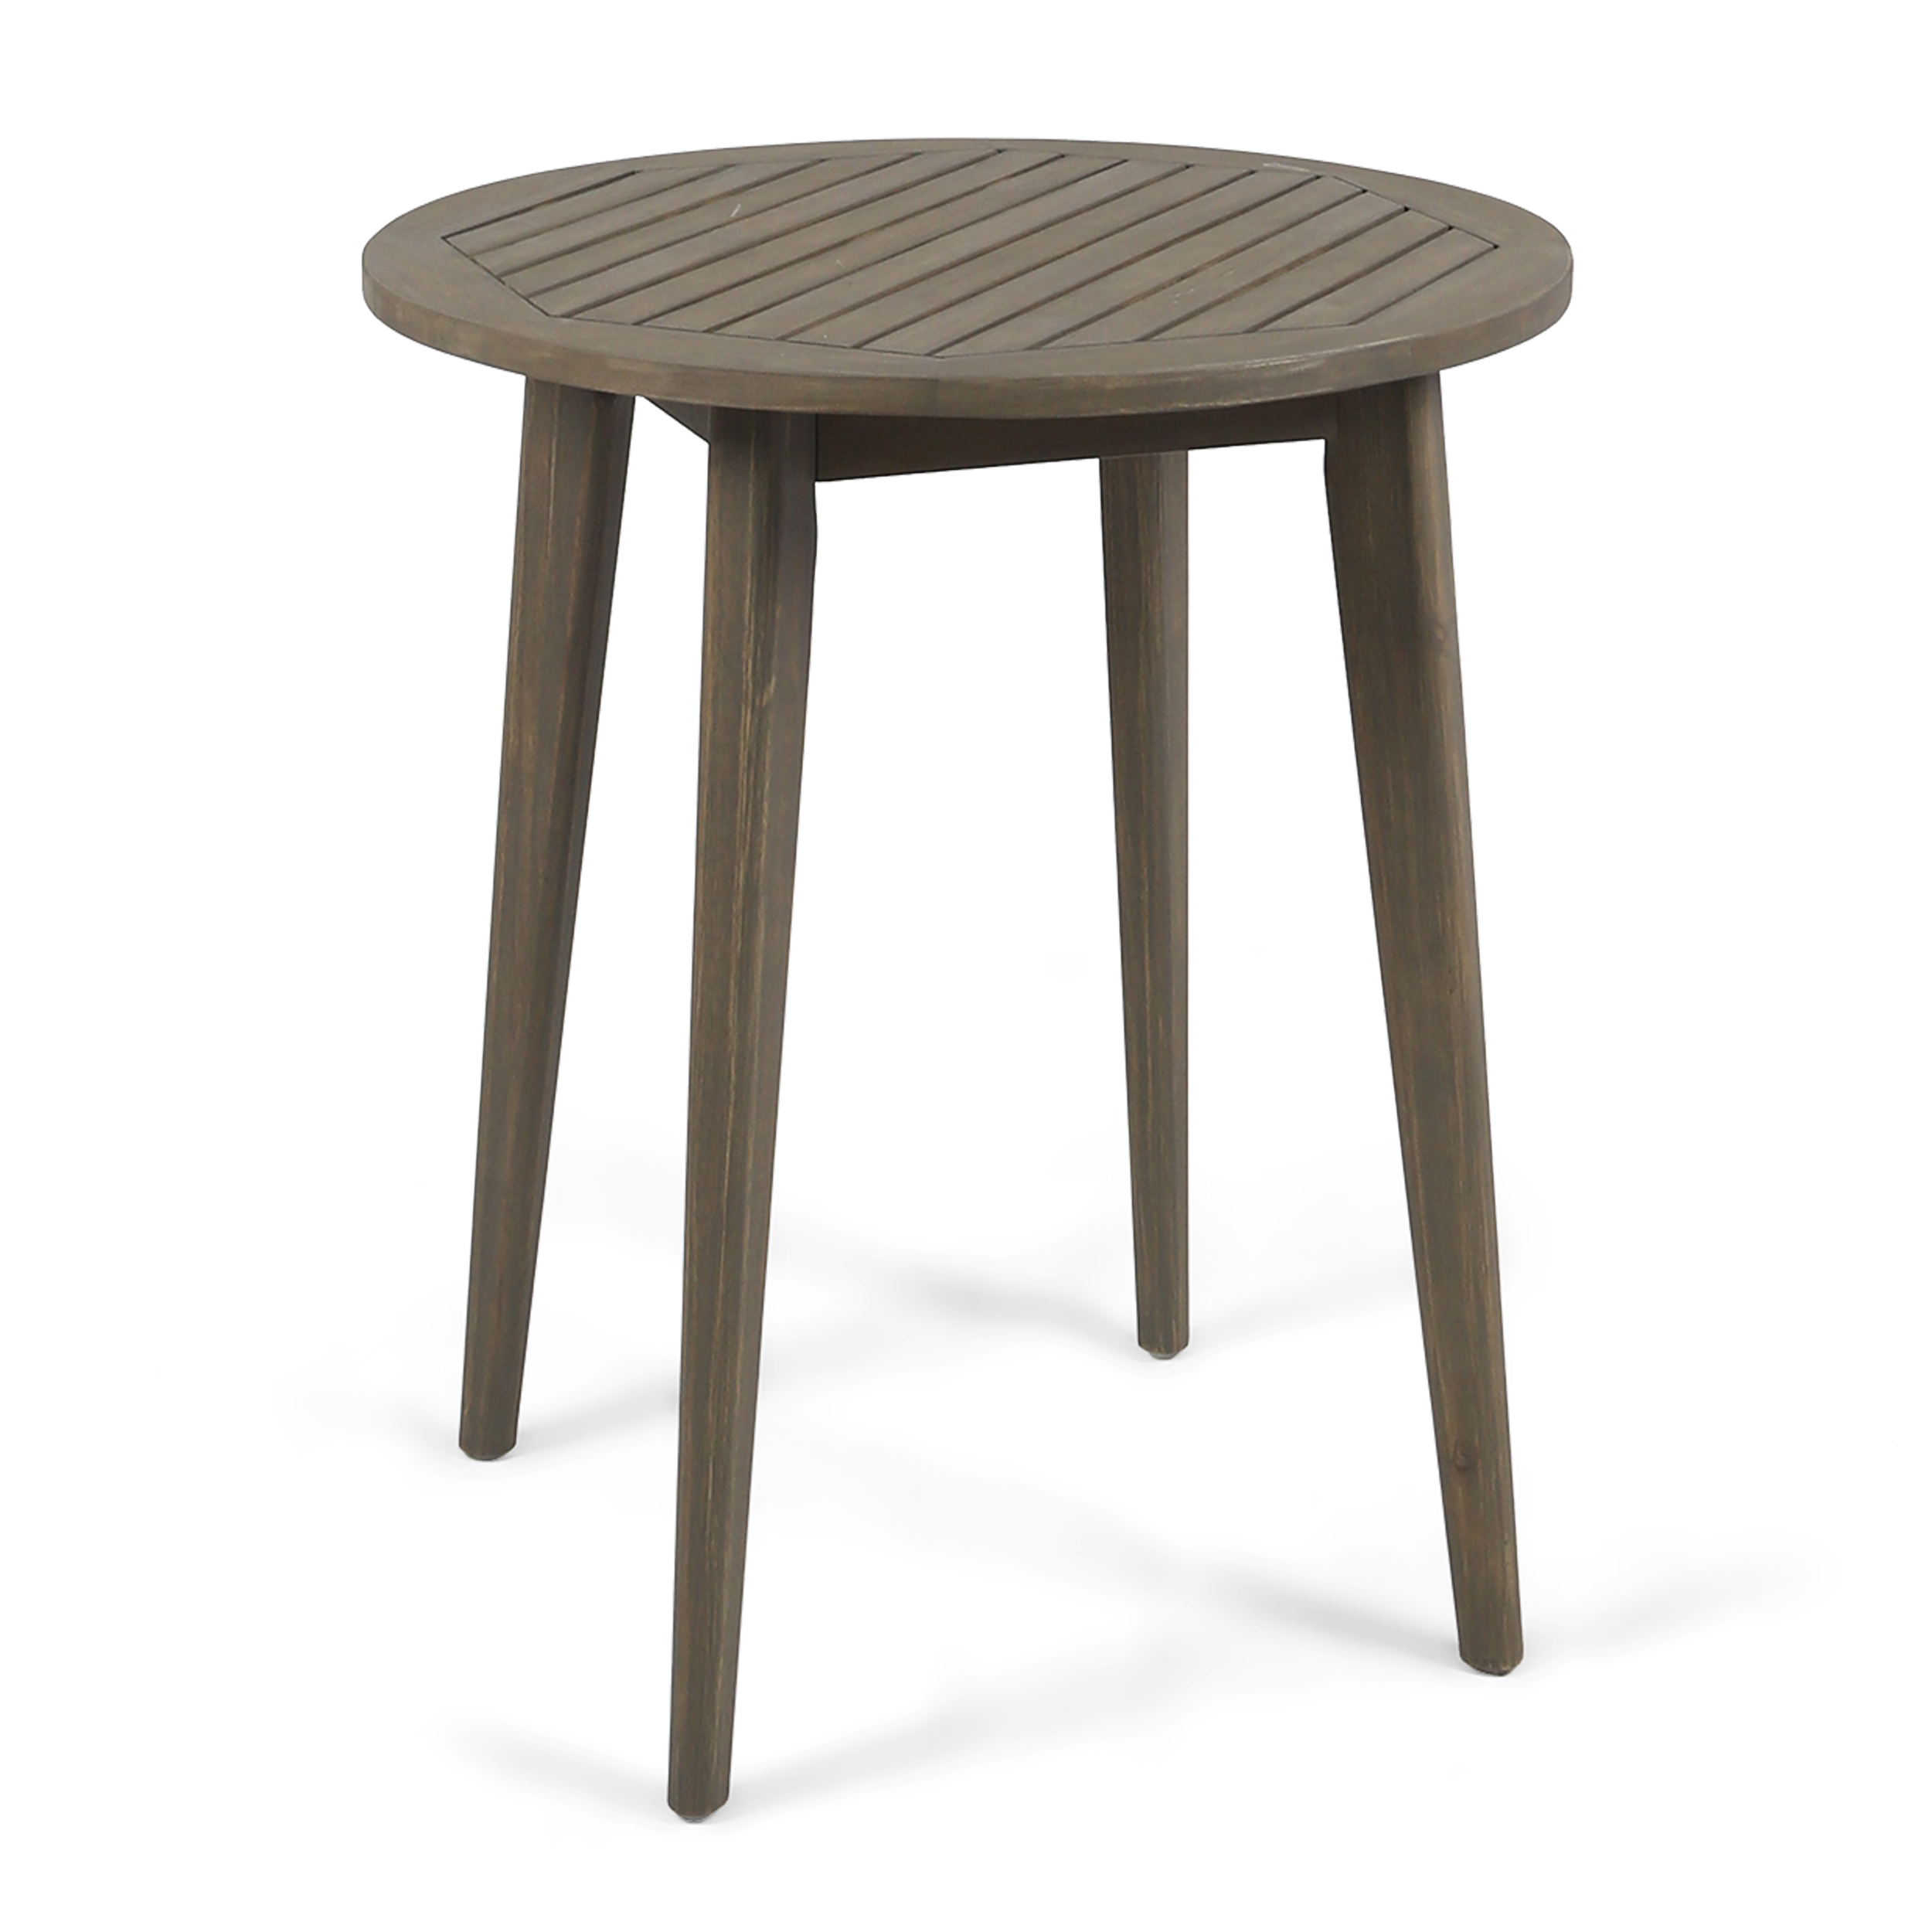 Fitch Outdoor Round Acacia Wood Bistro Table, Grey